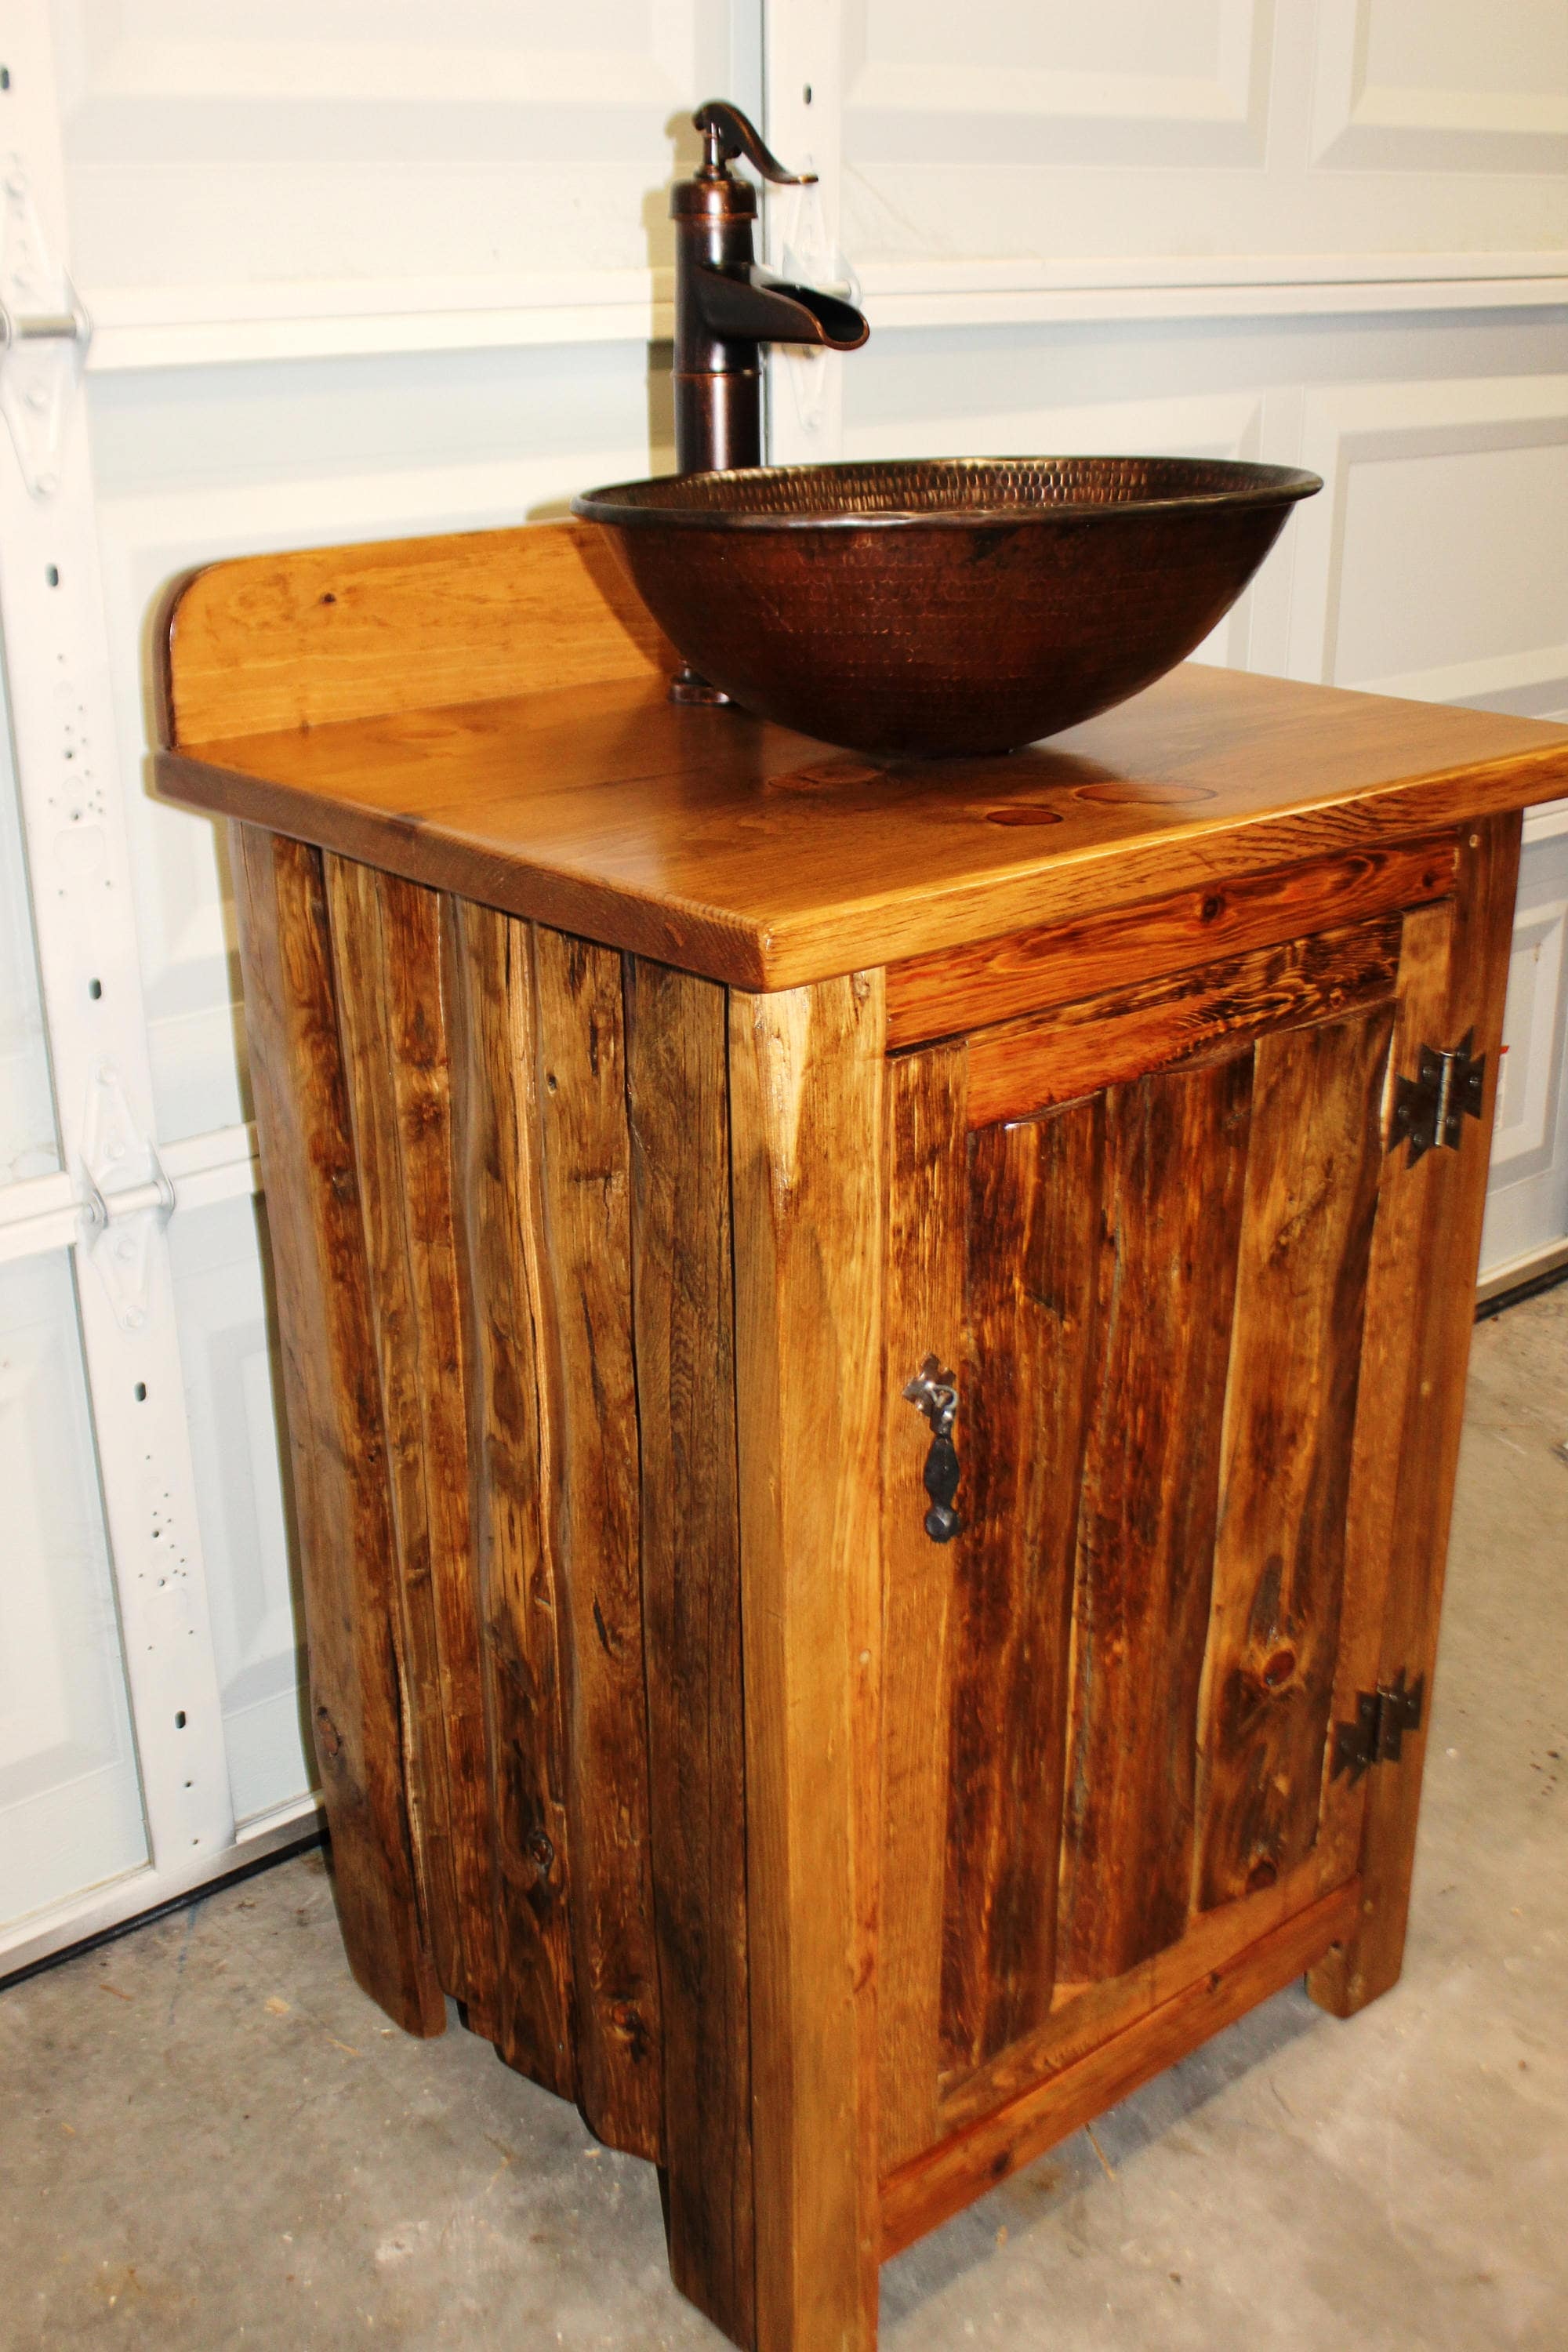 Where Can I Buy Rustic Furniture